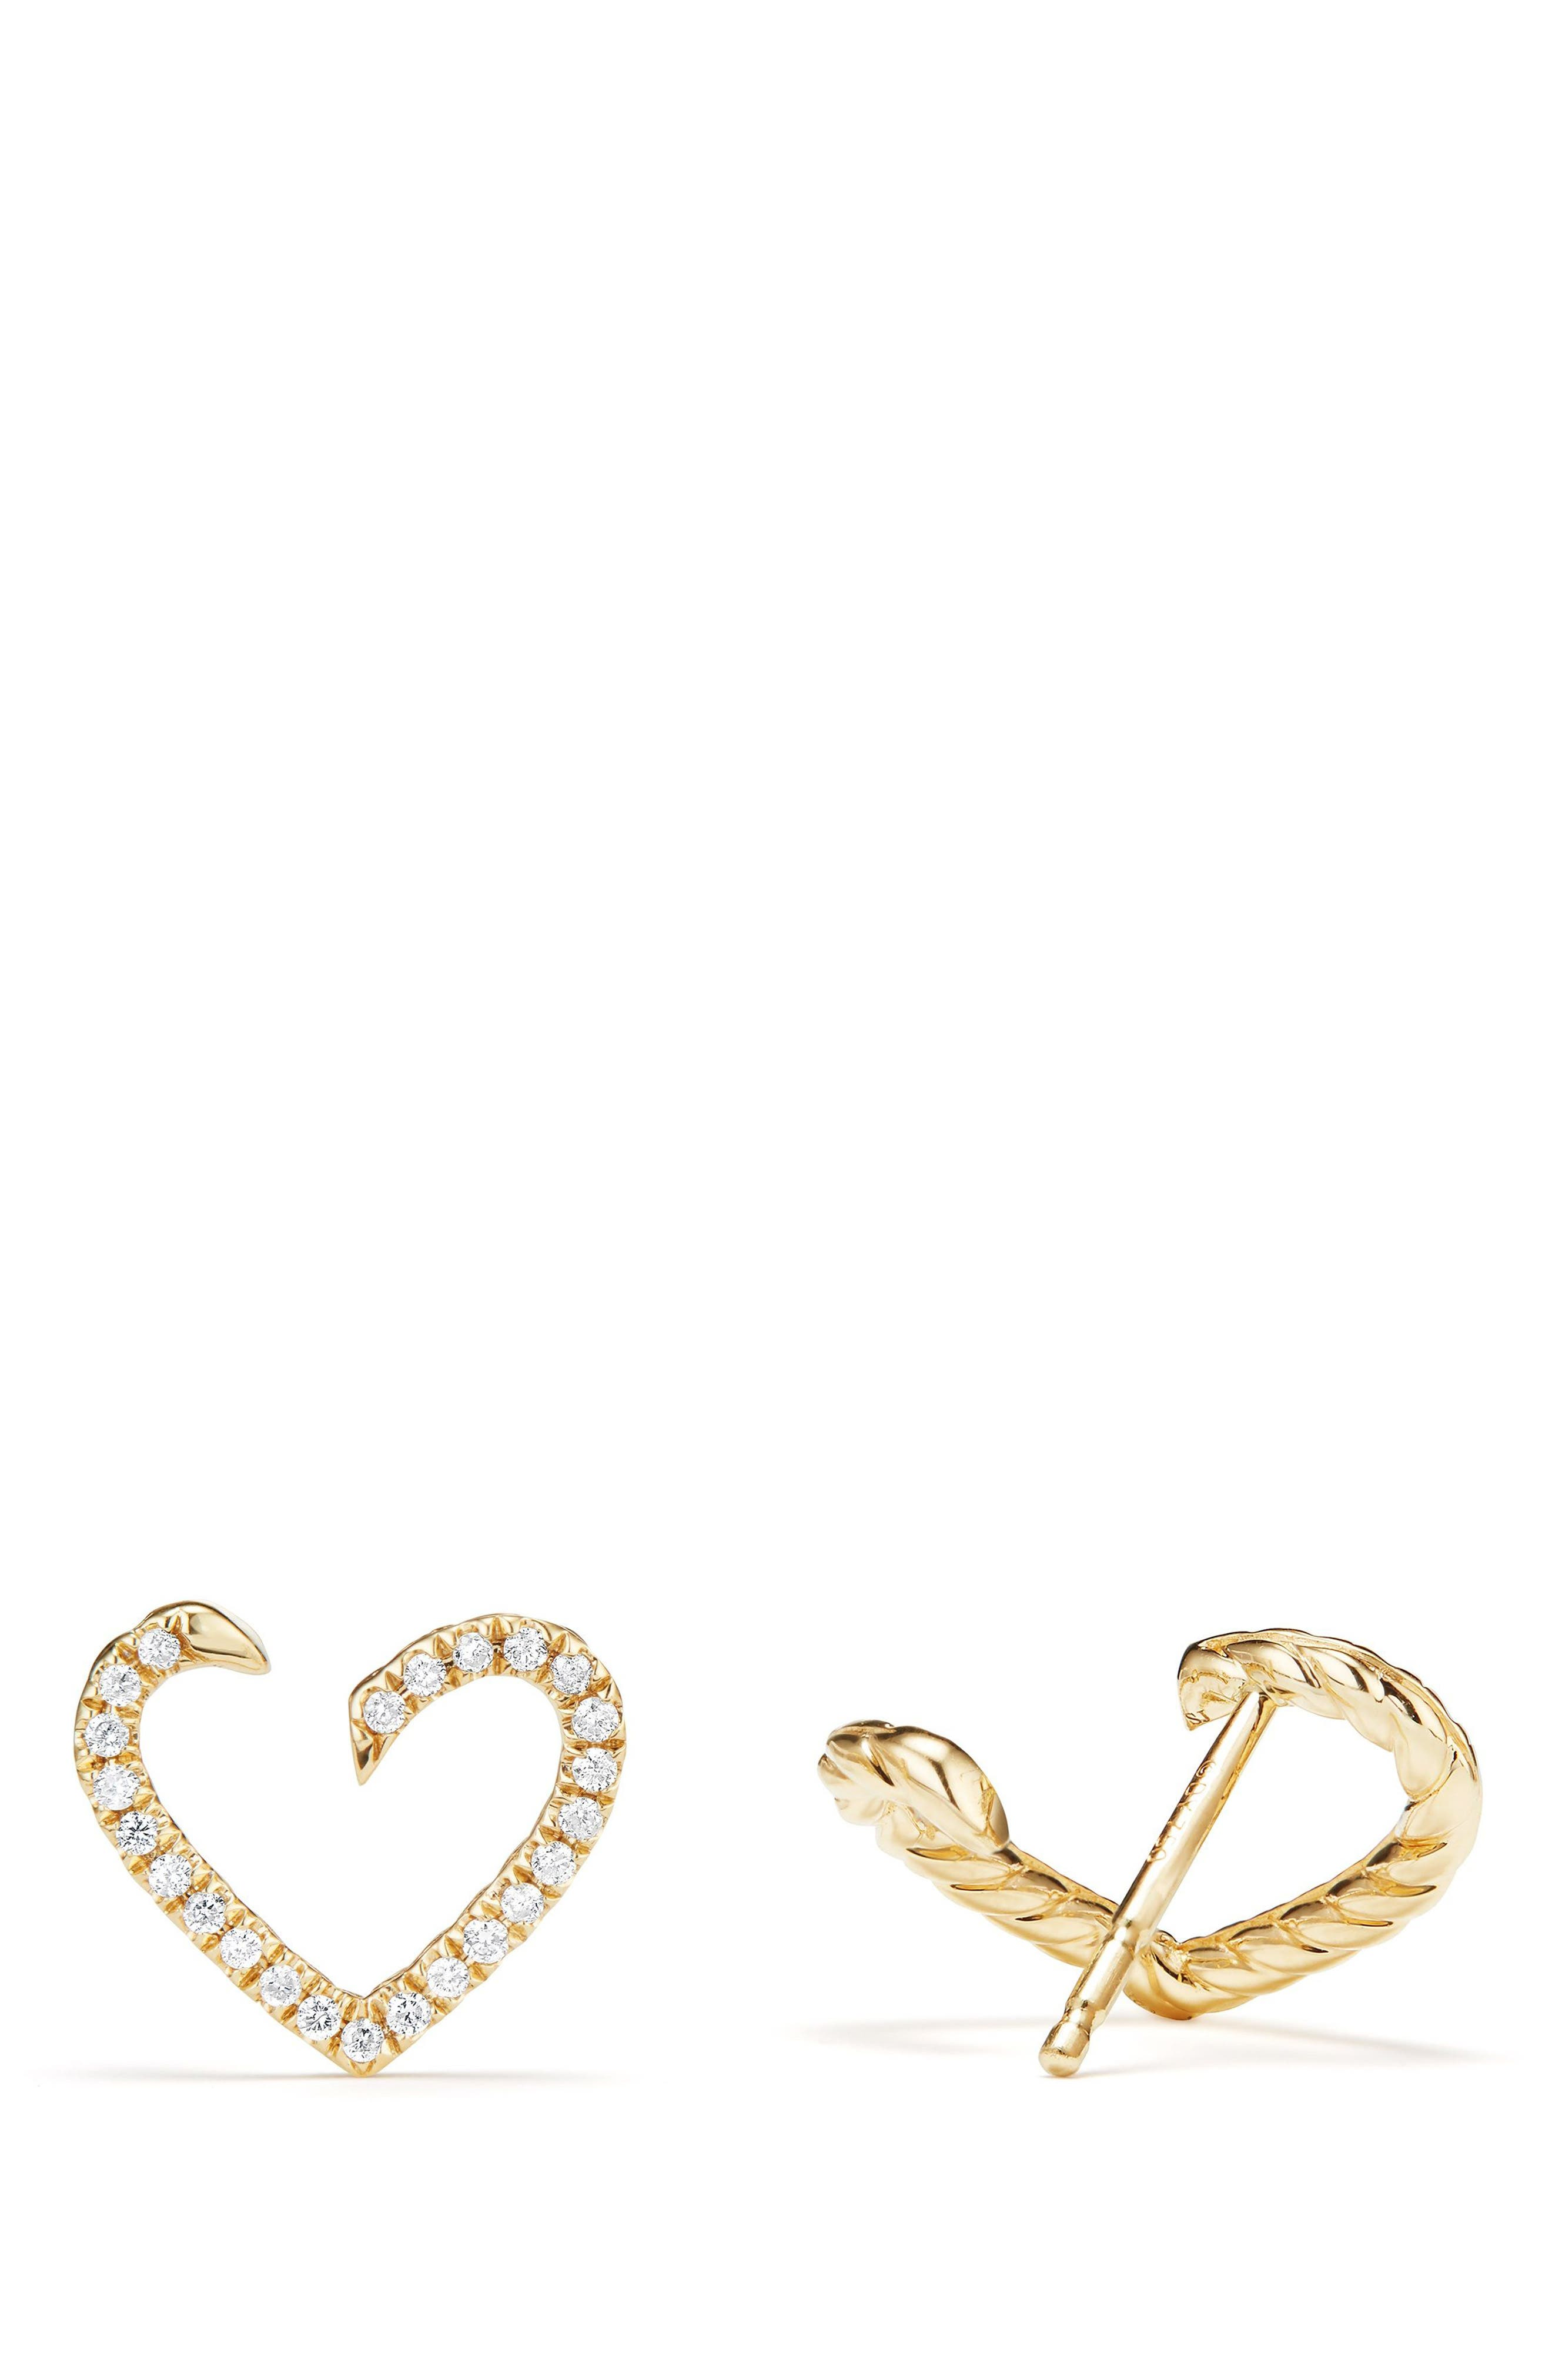 Heart Wrap Earrings with Diamonds in 18K Gold,                             Alternate thumbnail 2, color,                             Gold/ Diamond